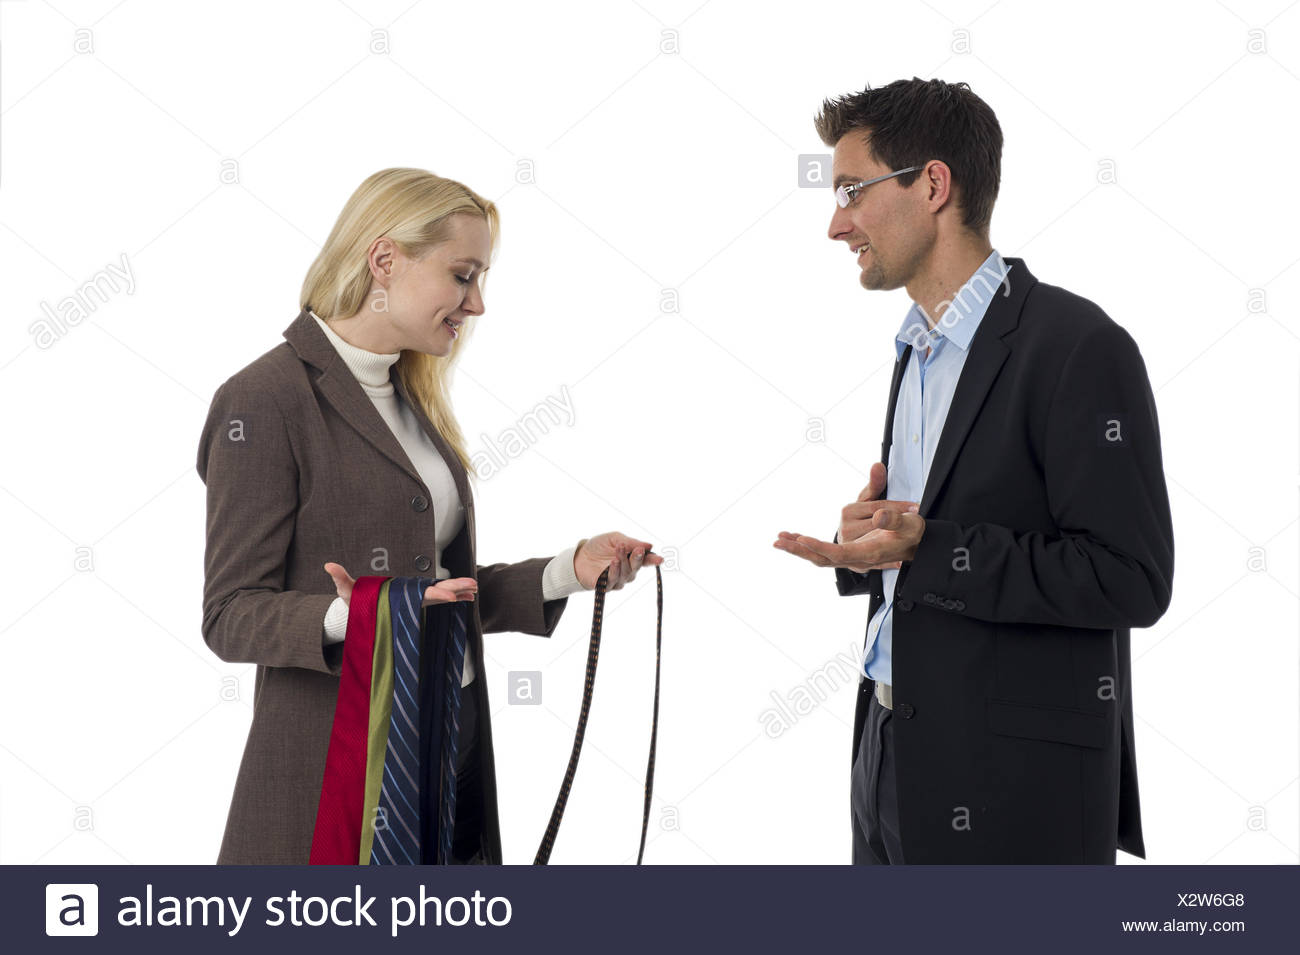 Man with tie - Stock Image